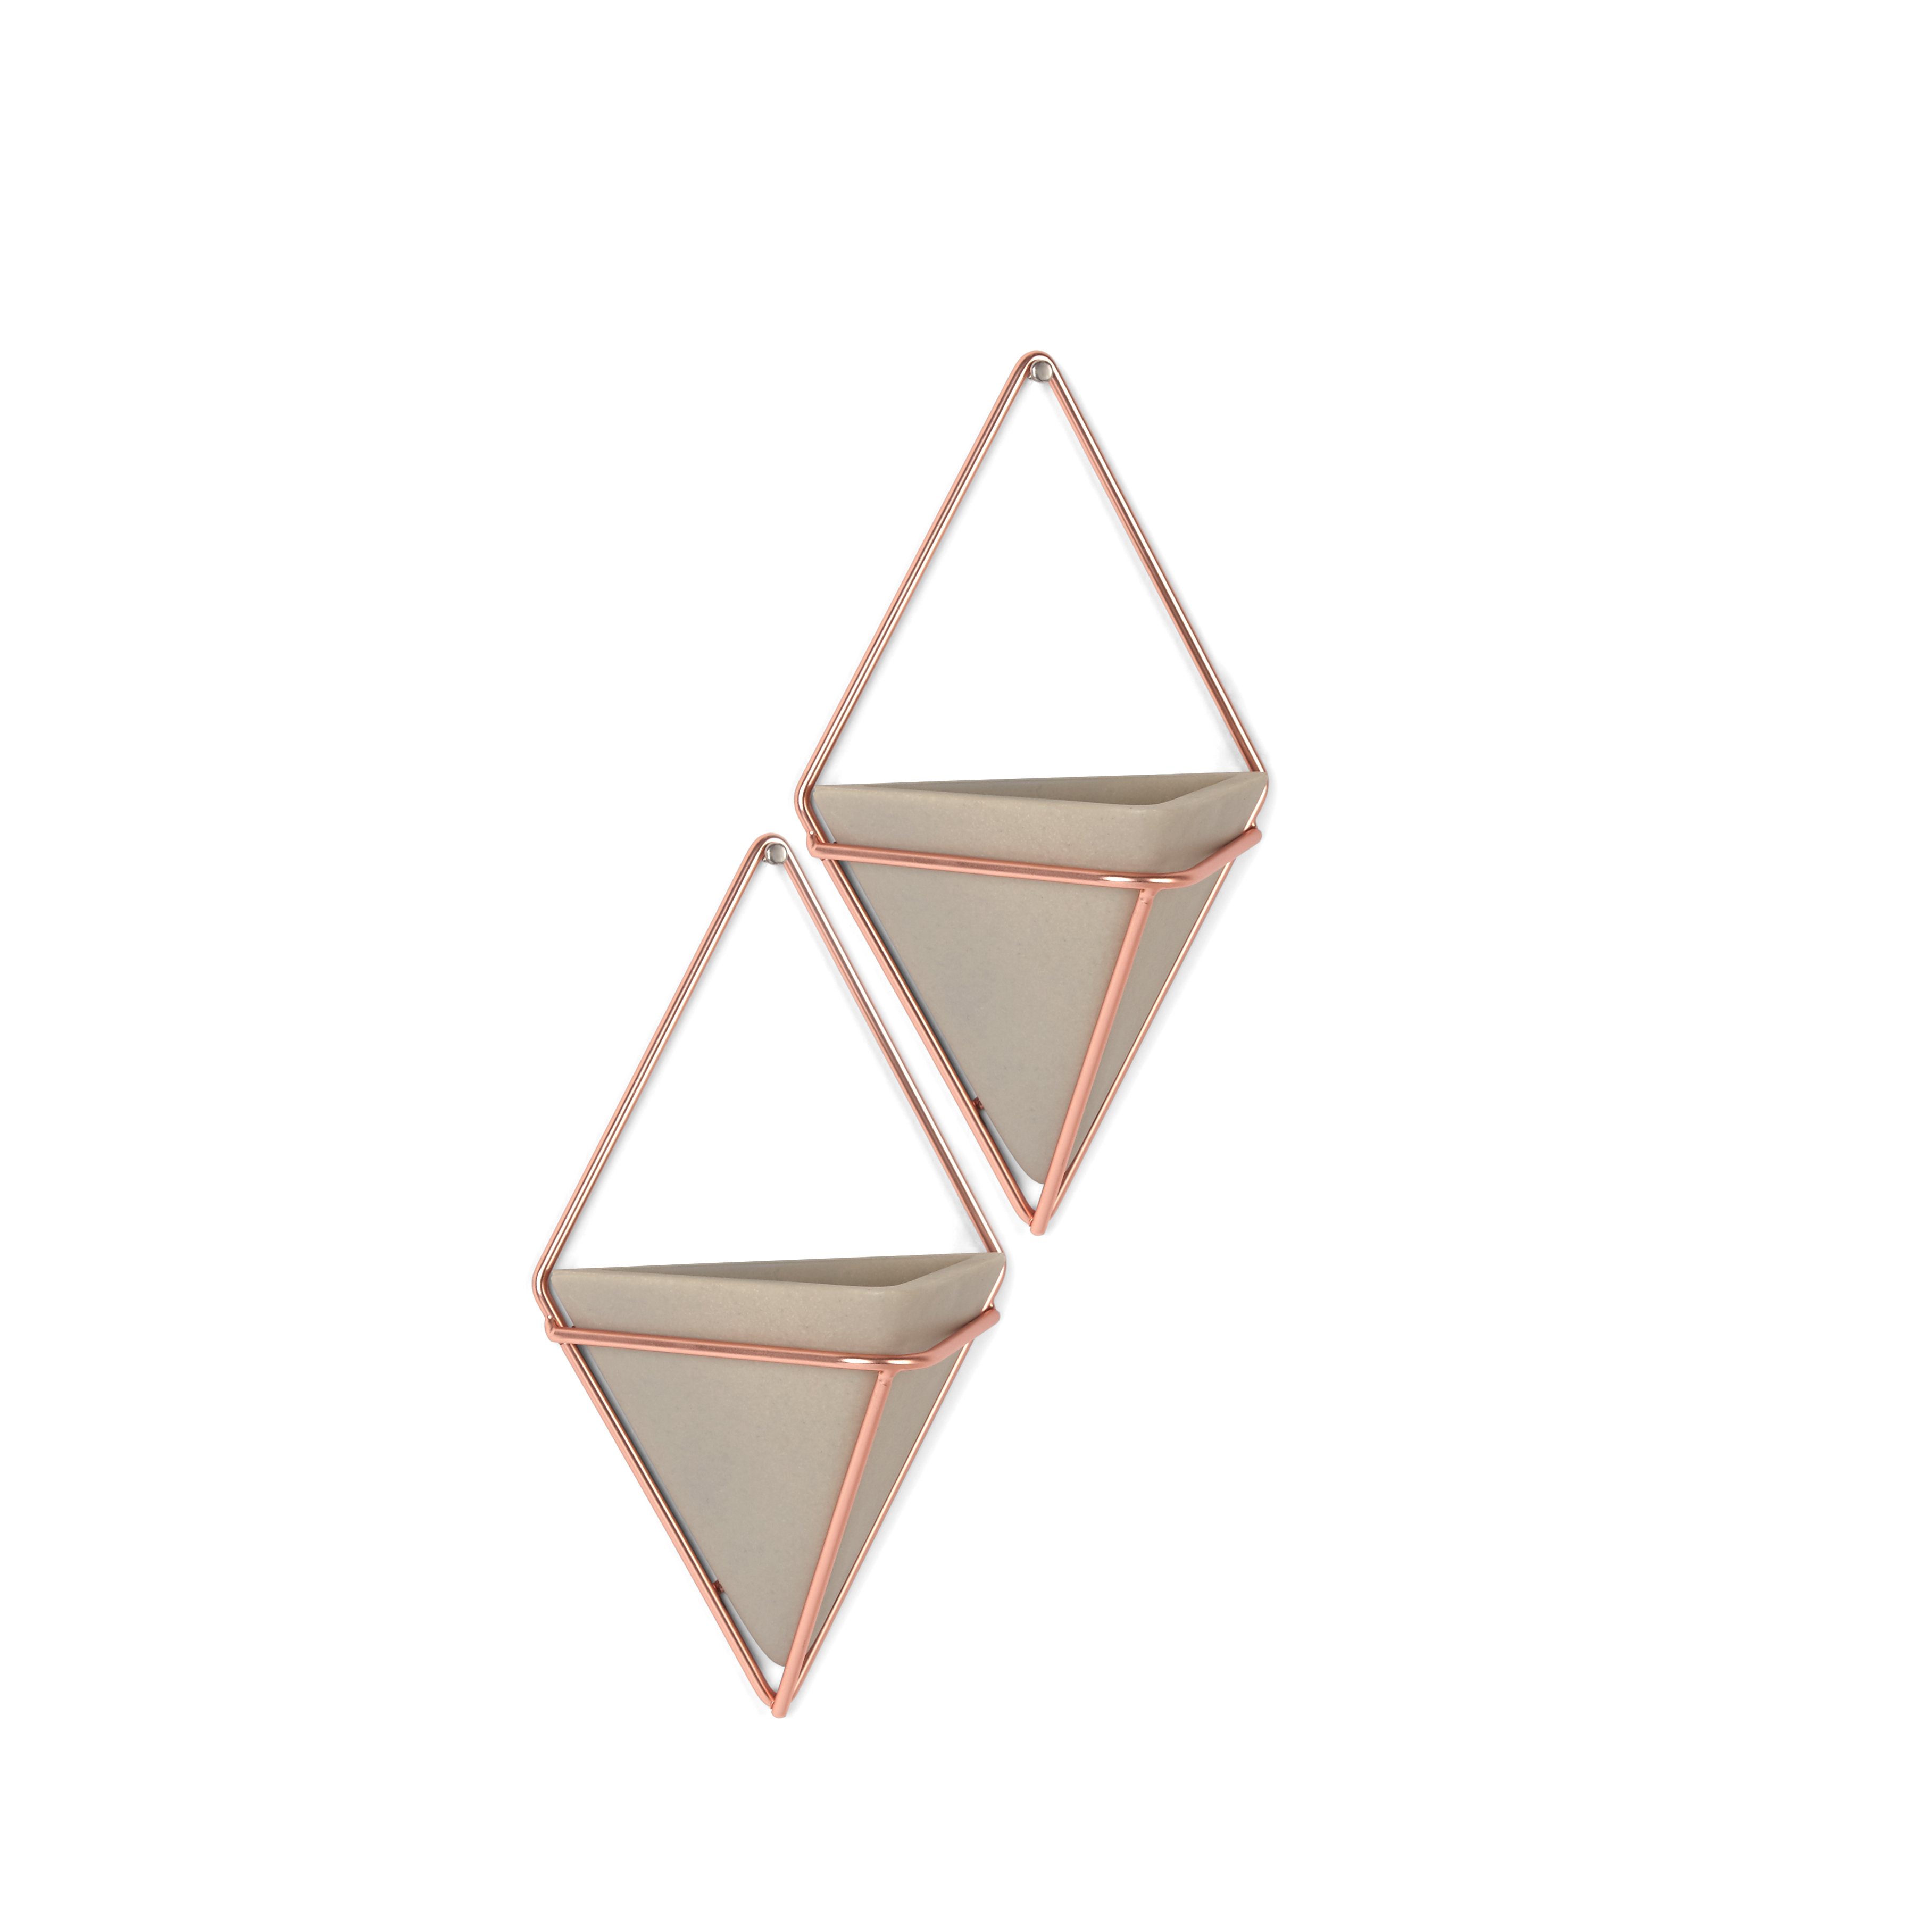 Umbra Trigg Hanging Planter Vase & Geometric Wall Decor Container - Great  For Succulent Plants, Air Plant, Mini Cactus, Faux Plants And More,  Concrete in 2 Piece Trigg Wall Decor Sets (Set Of 2) (Image 27 of 30)